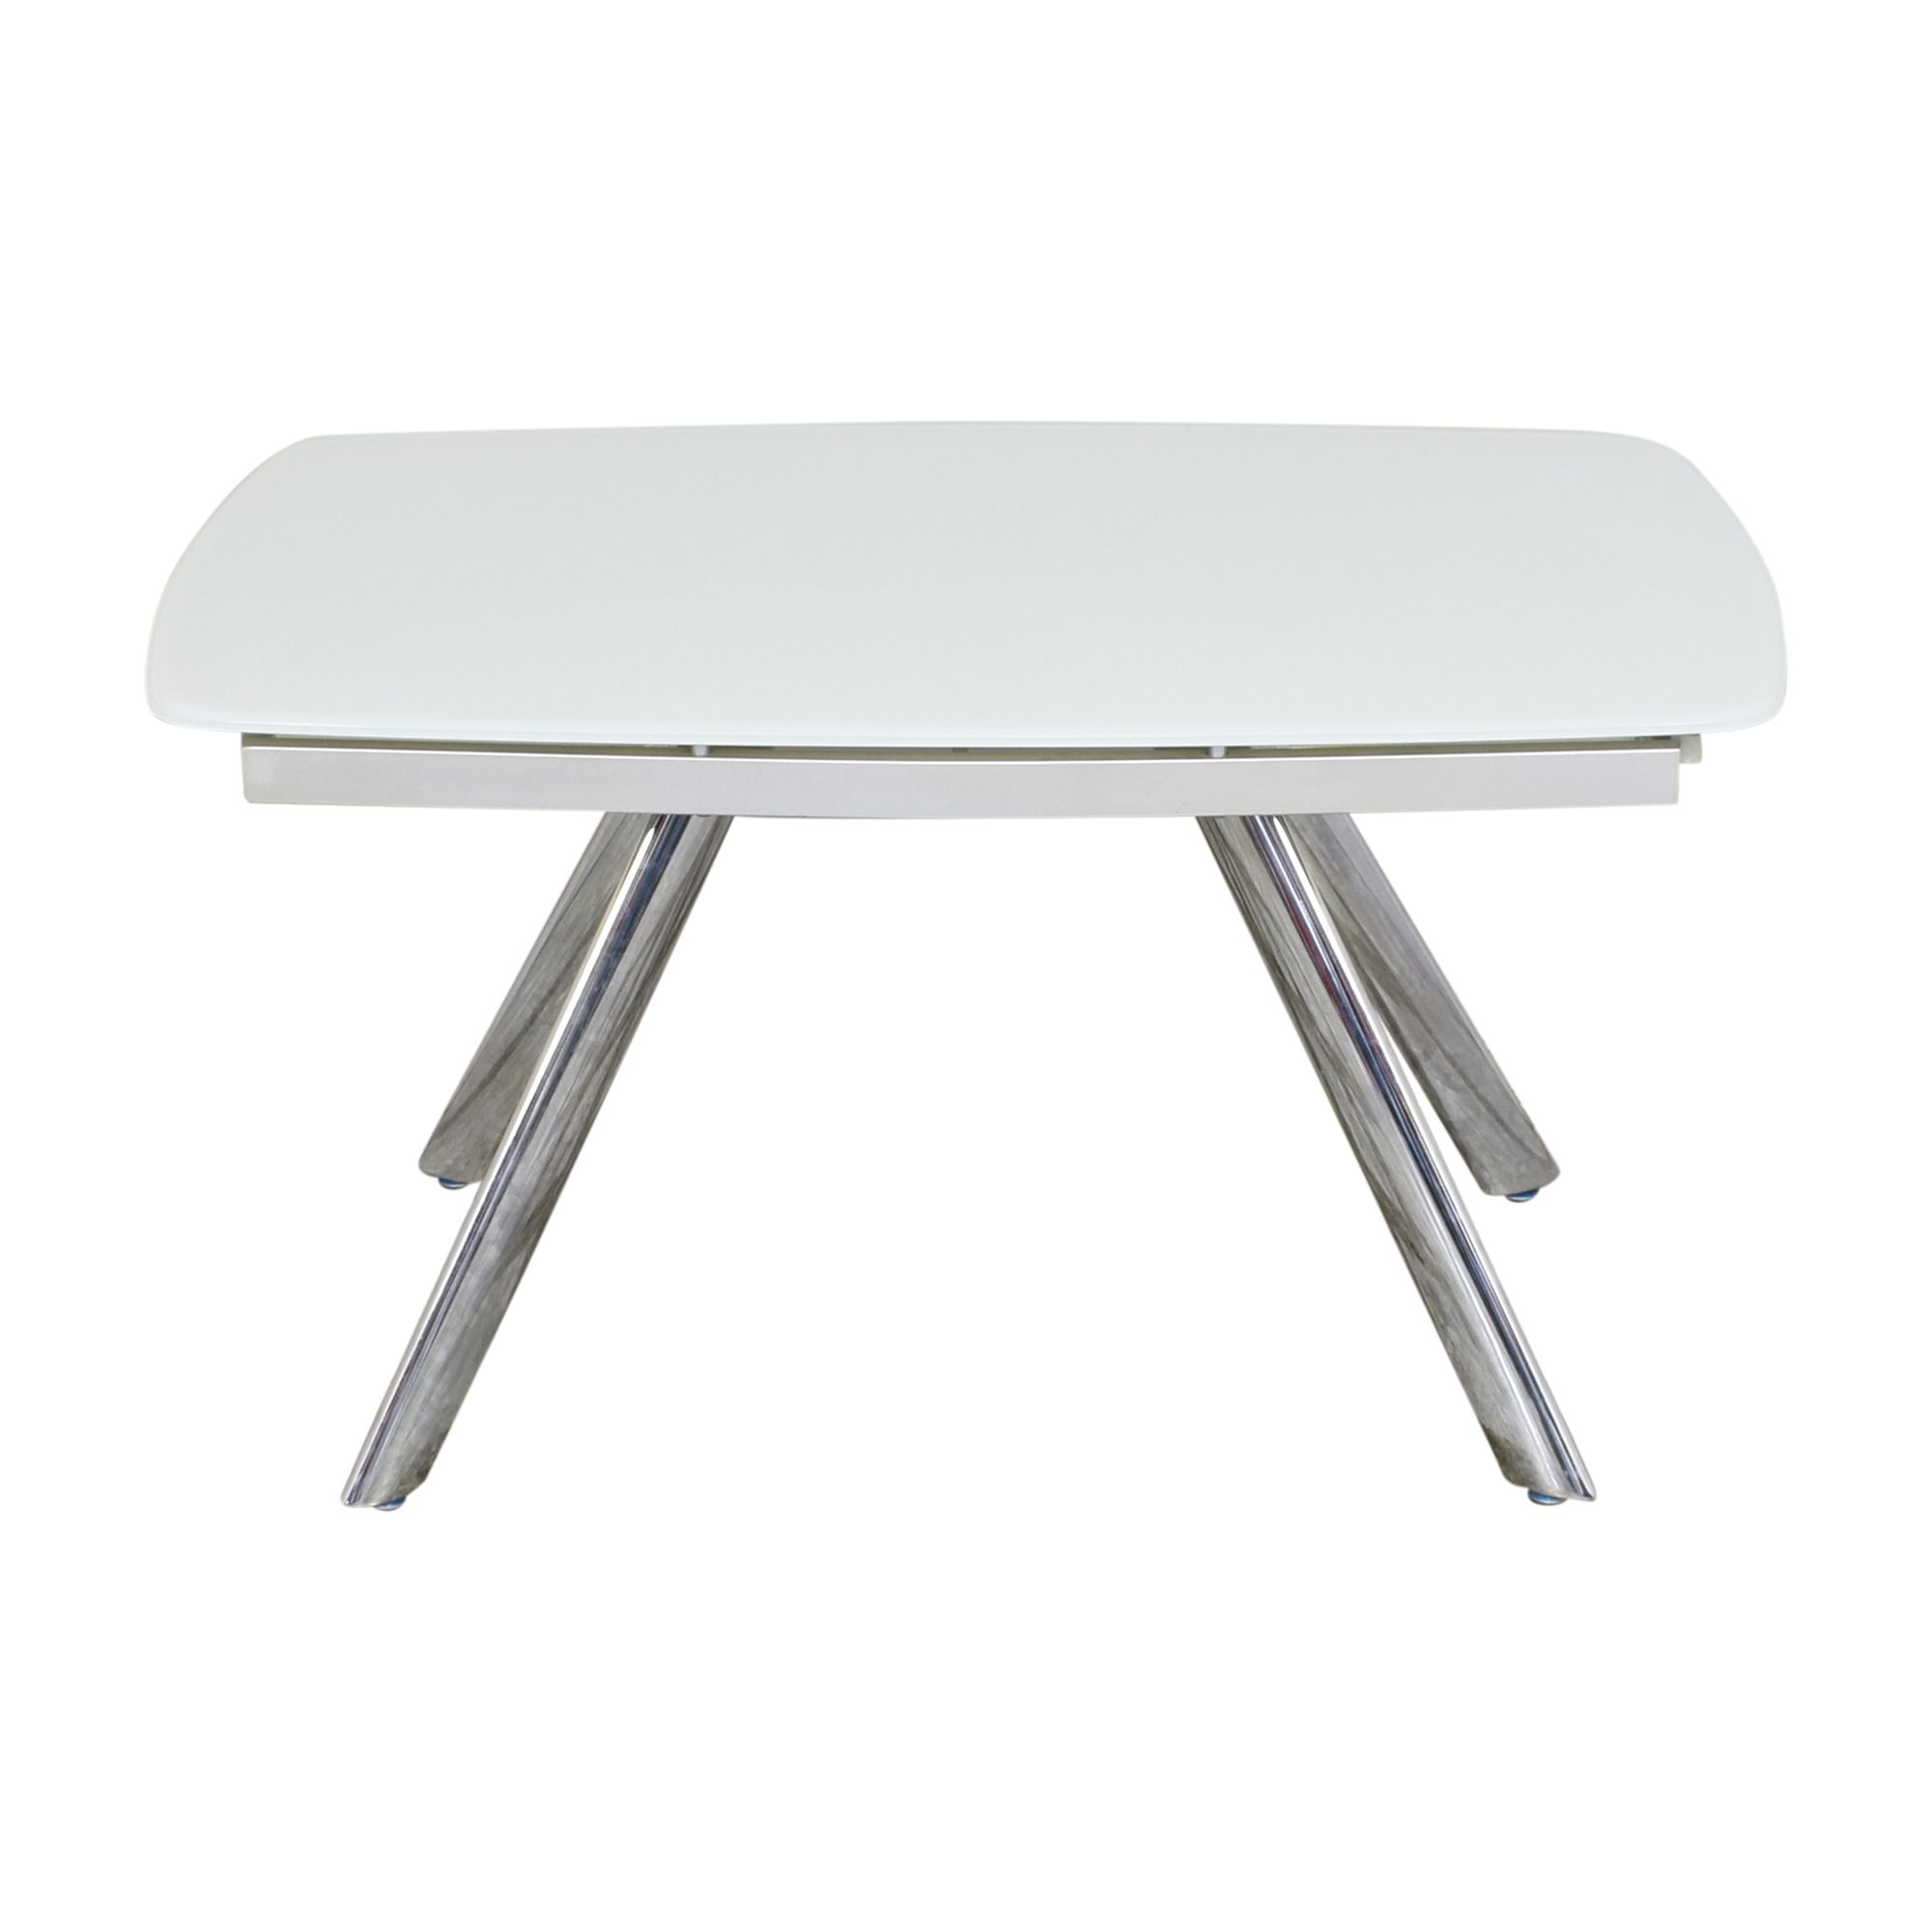 shop Raymour & Flanigan Paloma Extendable Dining Table Raymour & Flanigan Tables